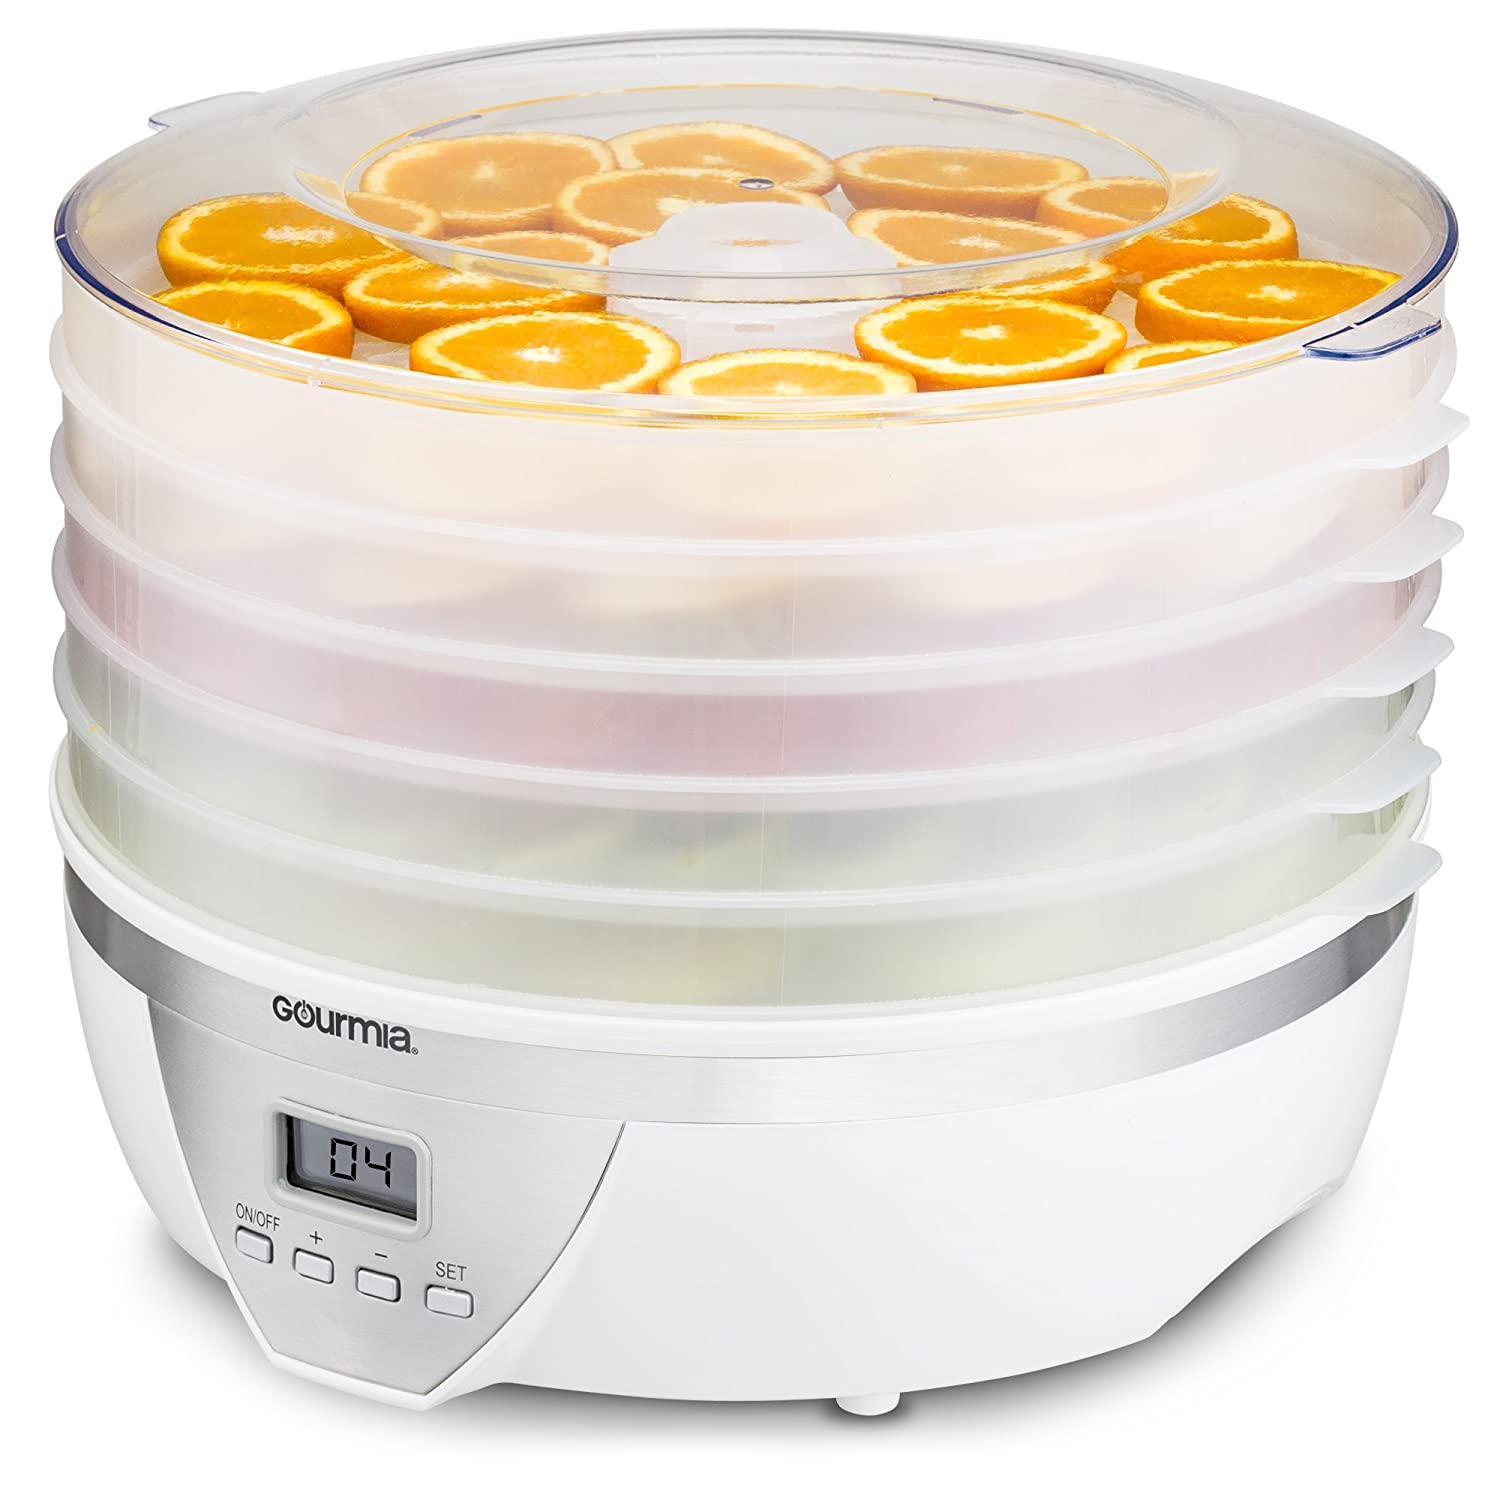 Gourmia GFD1550 Food Dehydrator with Digital Temperature Settings, Five Nesting Tray Drying System for Beef Jerky, Fruits and More, BPA Free Plus Free Recipe Book